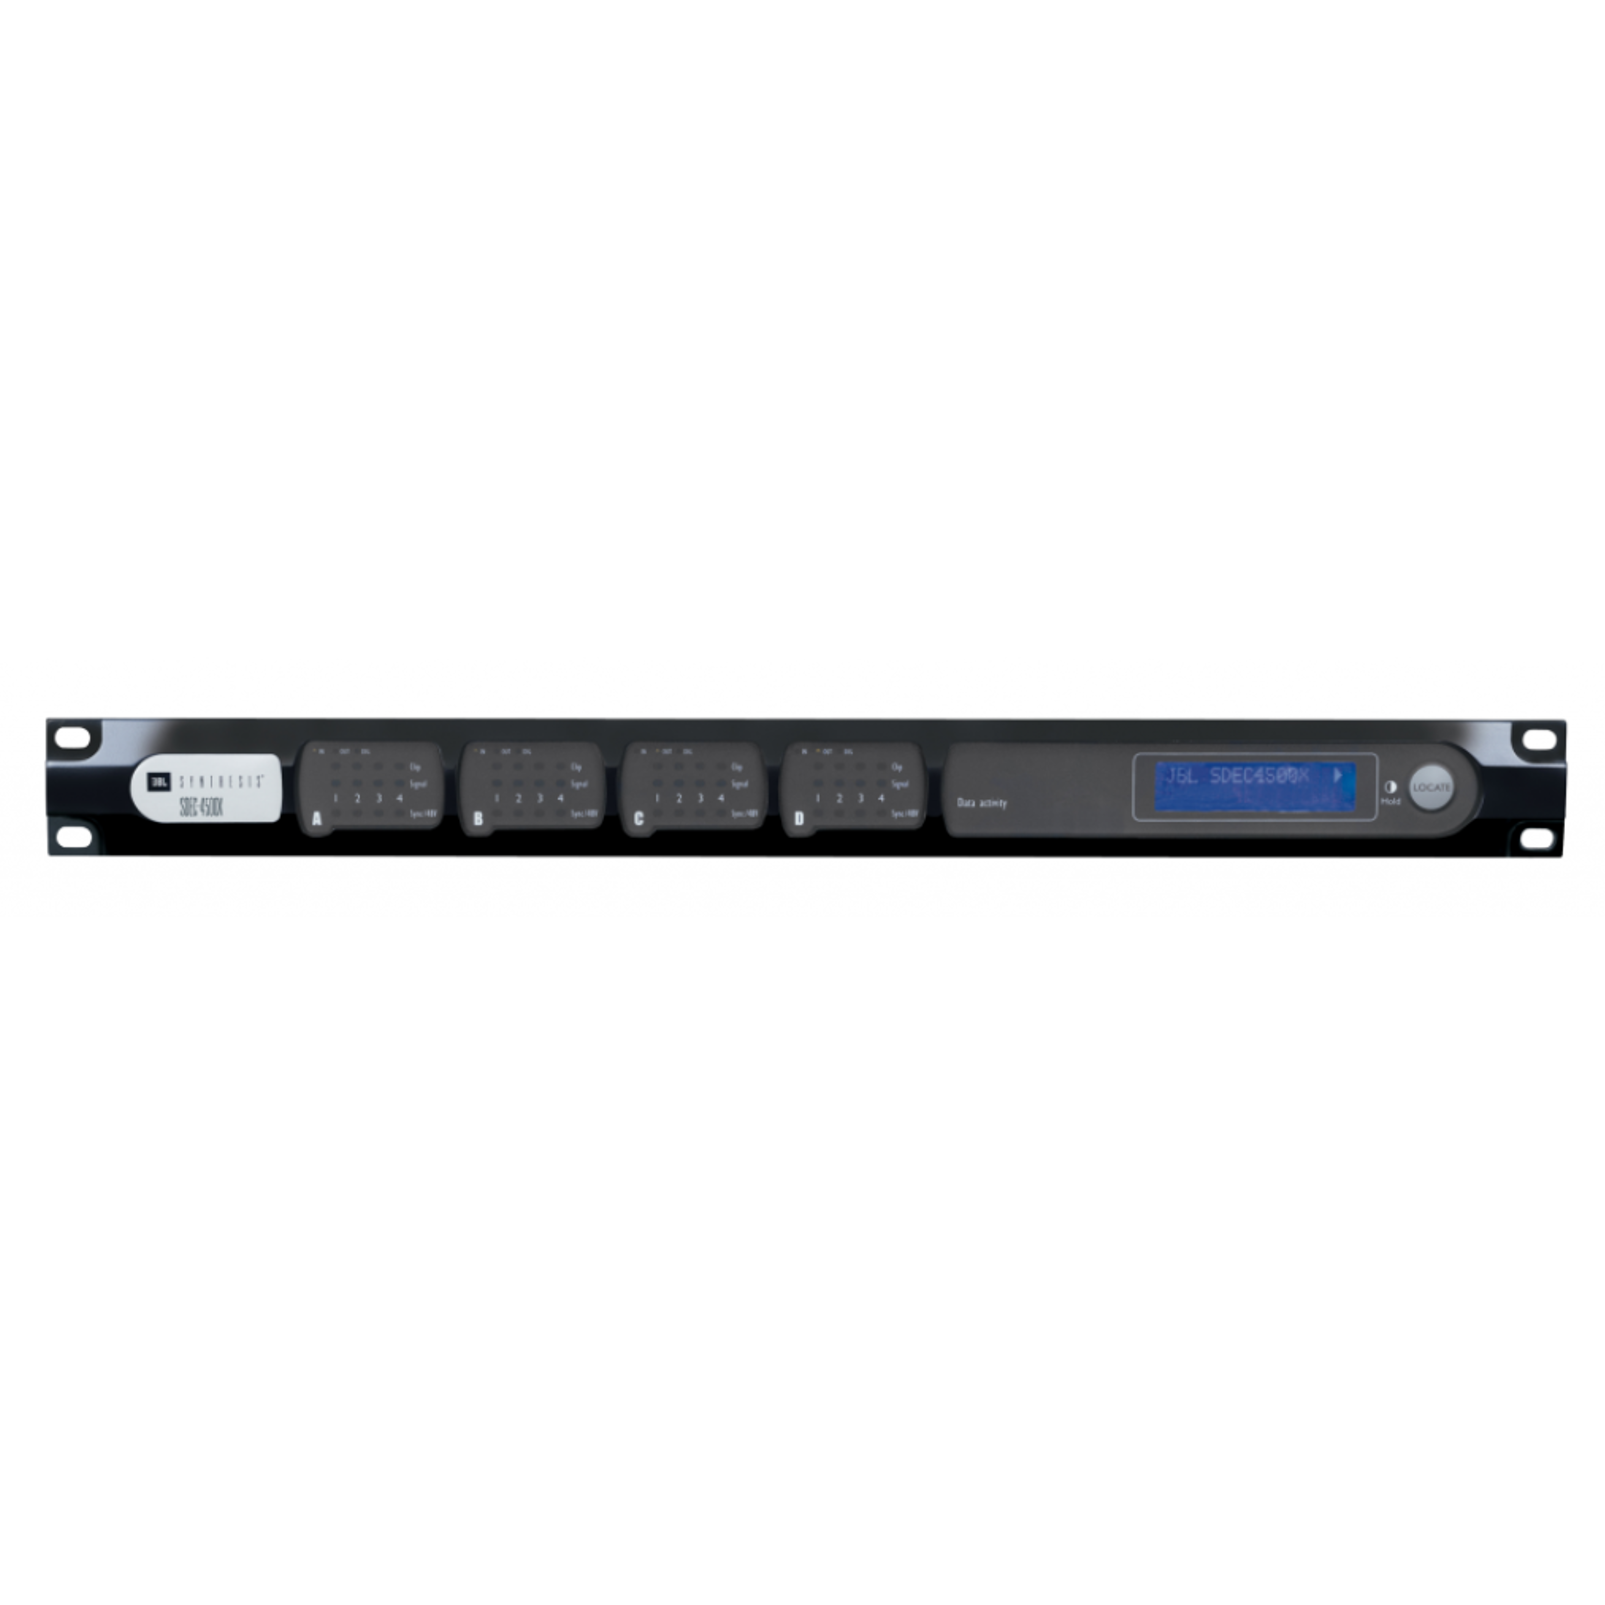 SDEC-4500X - Black Lacquer - 16-channel Fully-balanced Channel Expansion - Hero